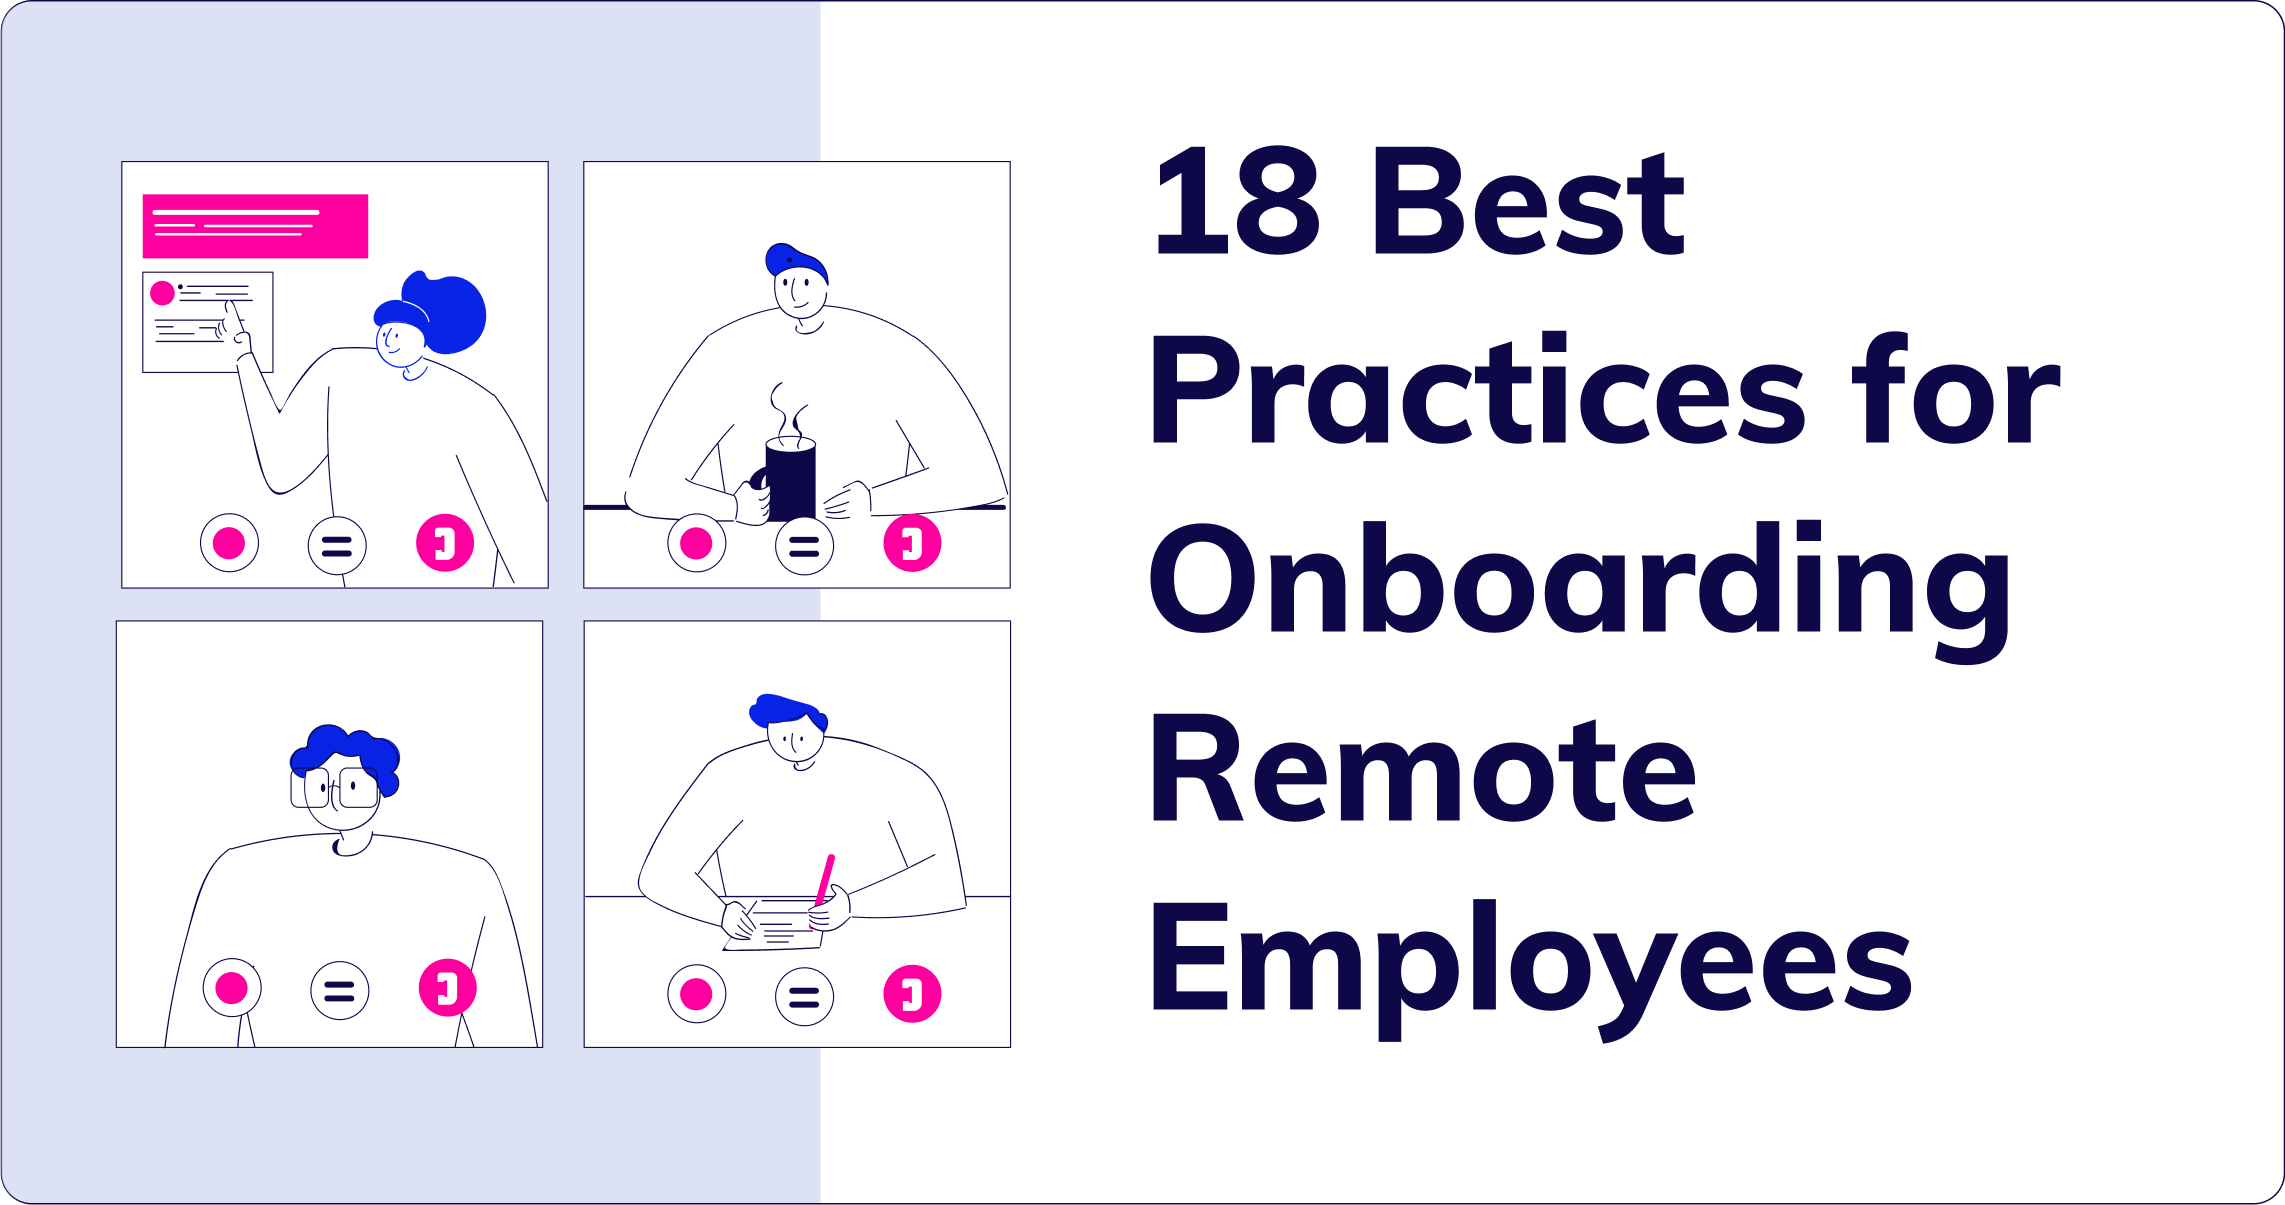 18-best-practices-for-onboarding-remote-employees